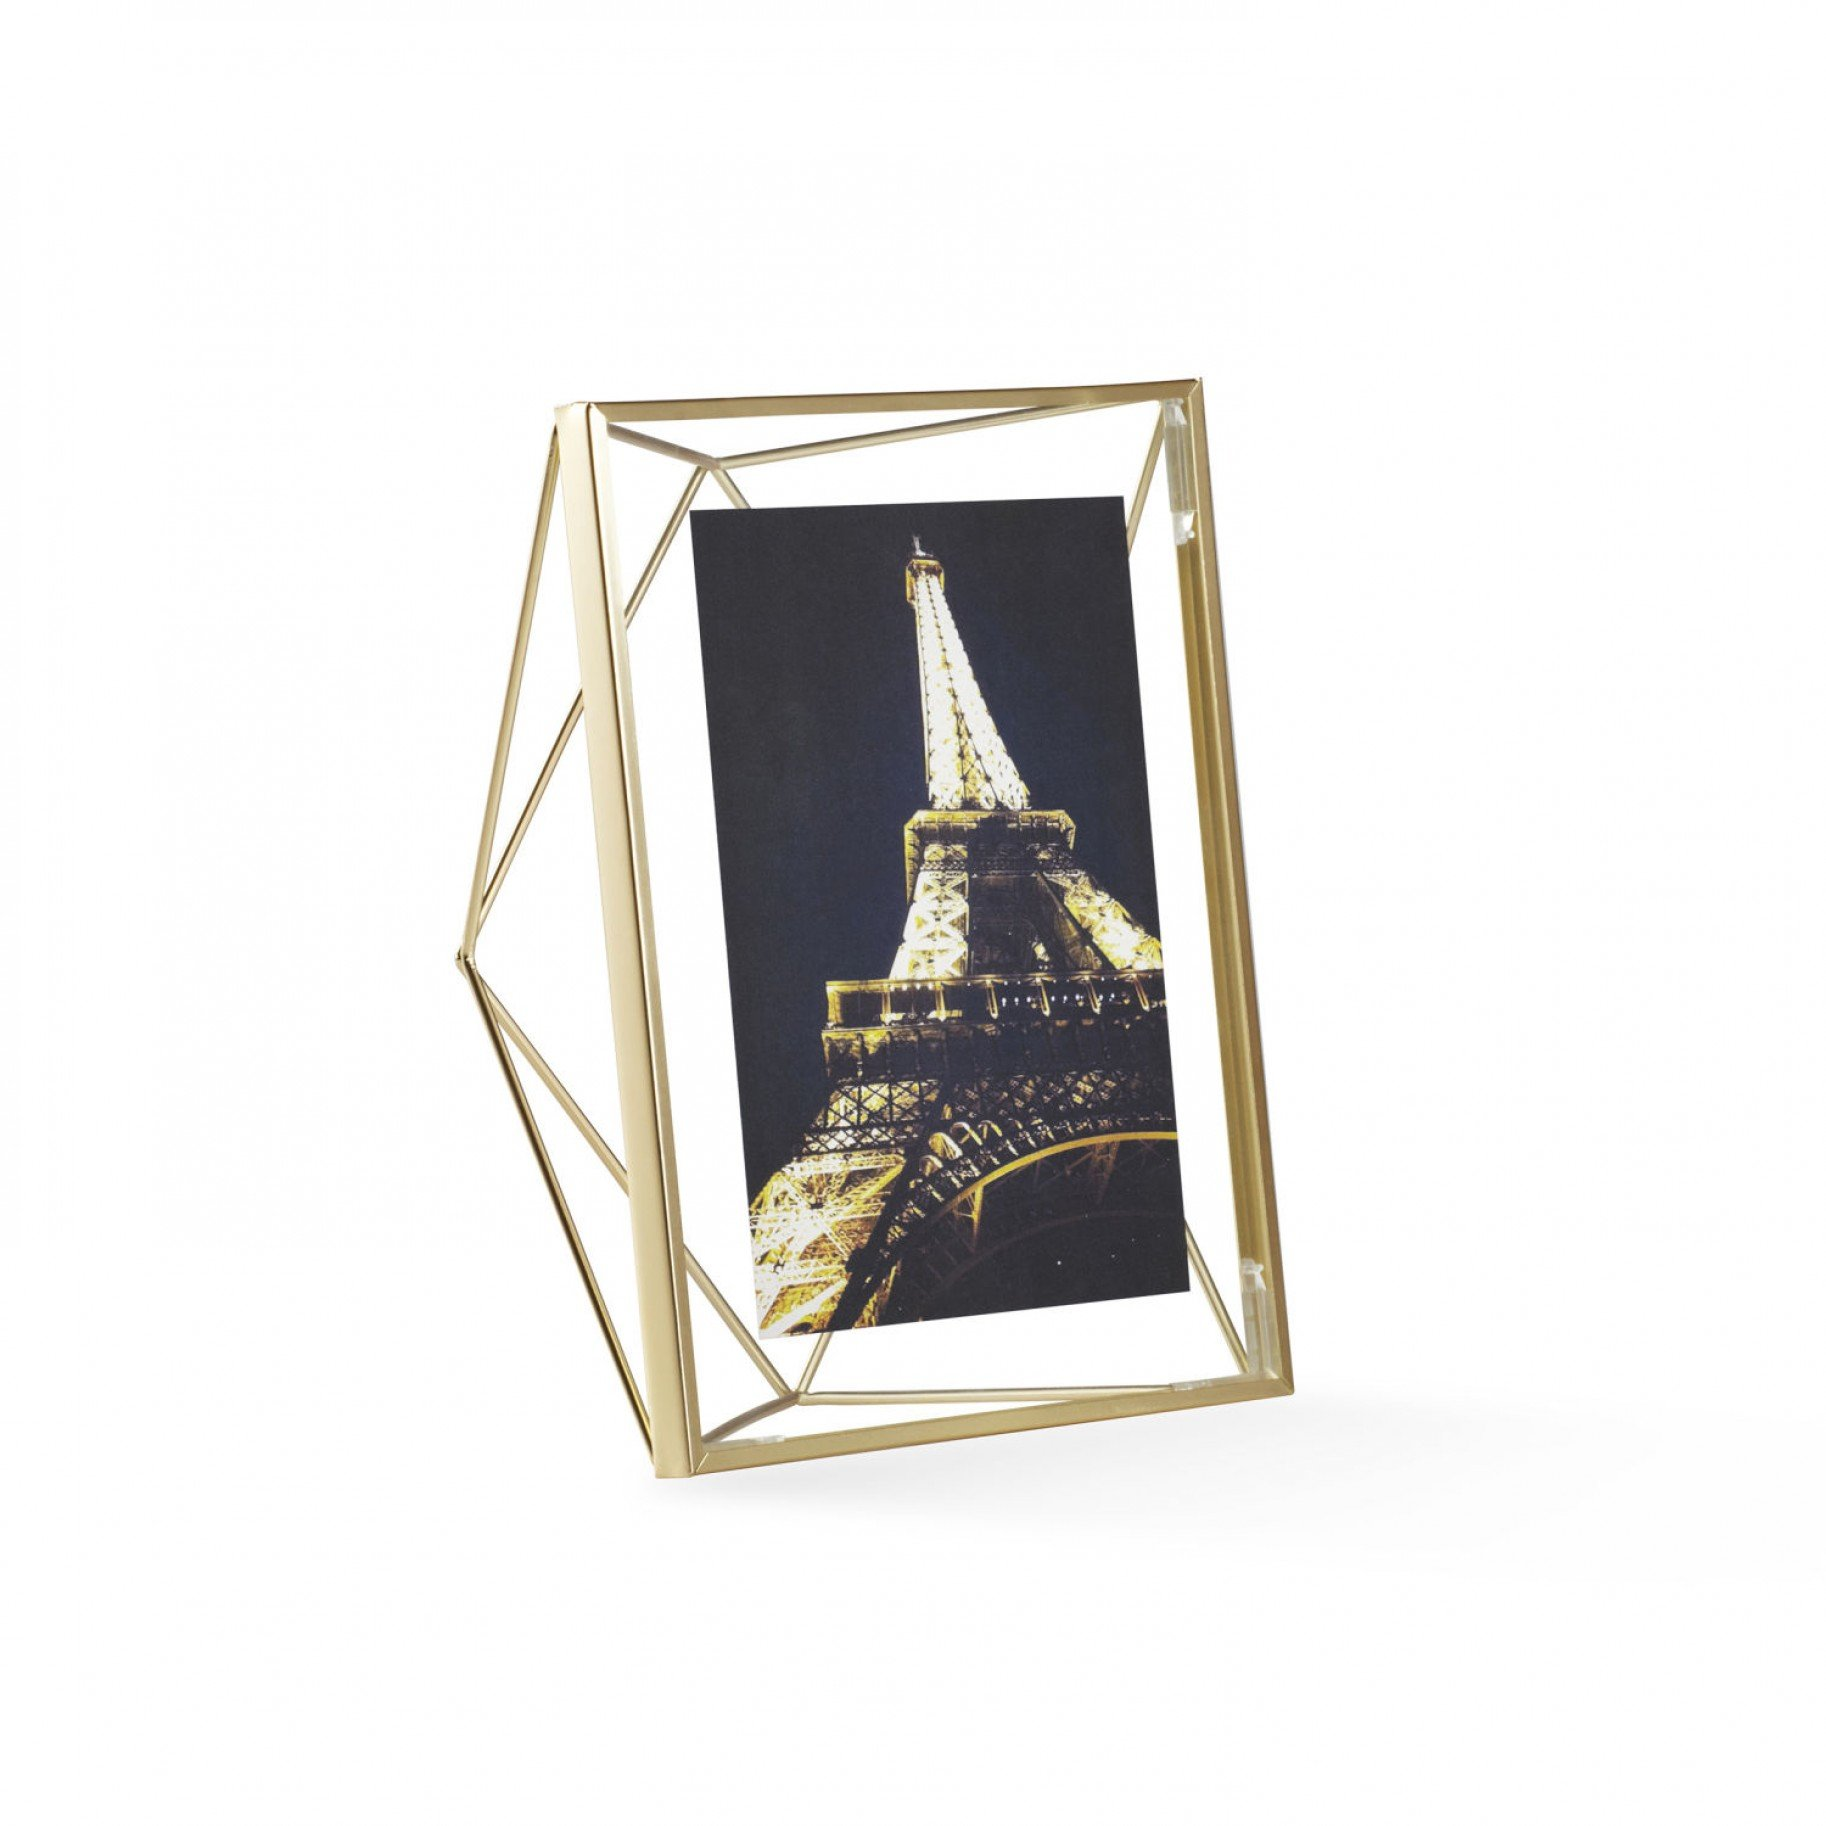 Prisma Frame Matte Brass - Umbra at Modern Intentions